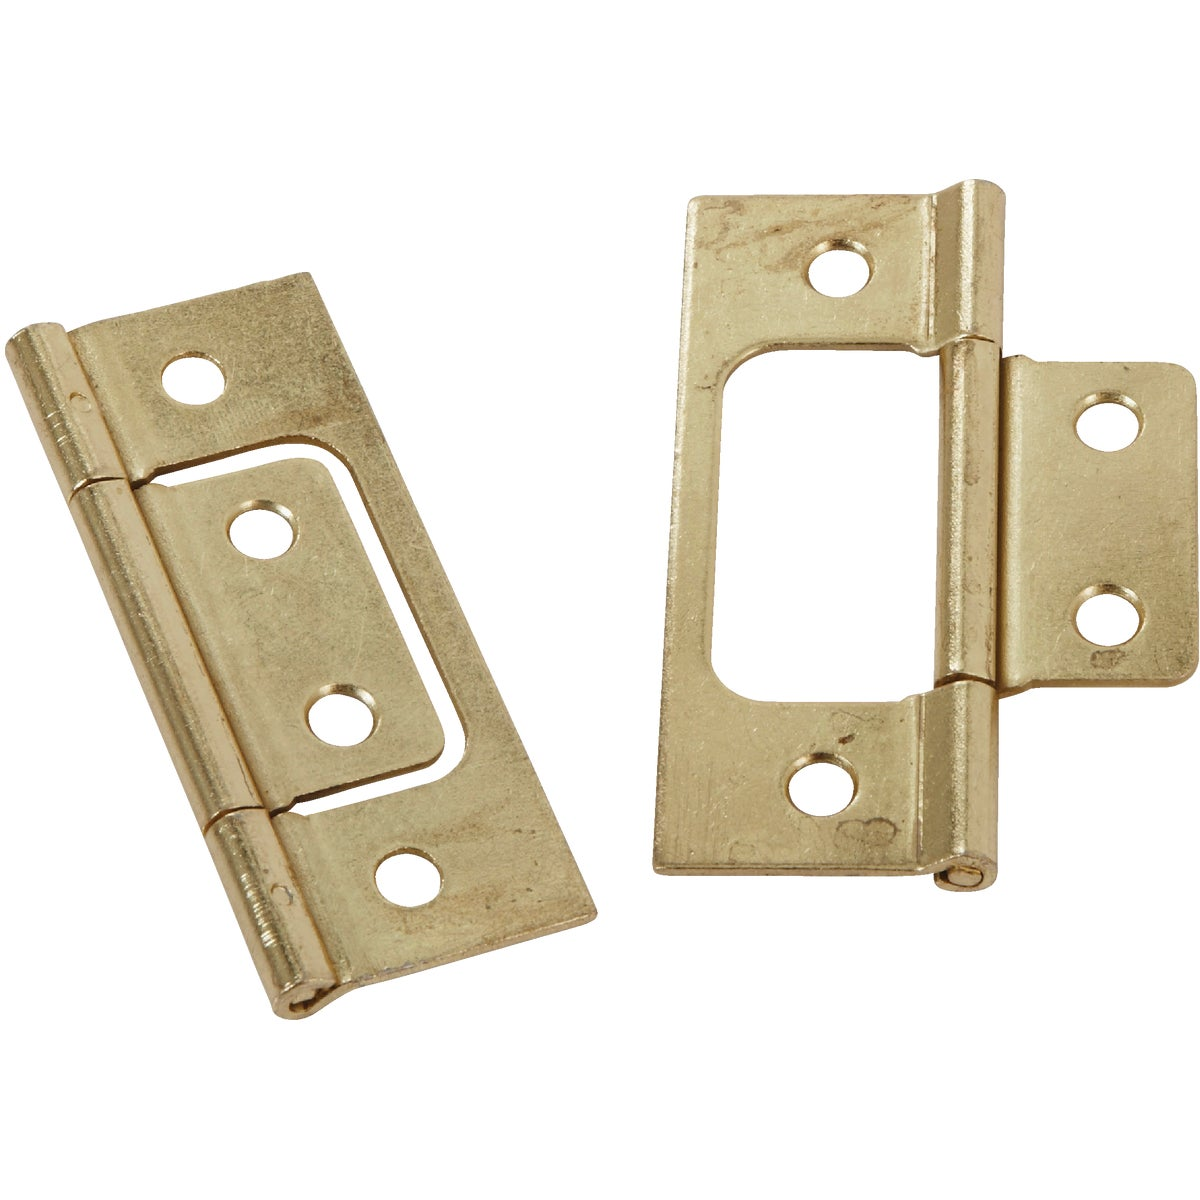 BIFOLD HINGES - 1823PPK2 by Johnson Products